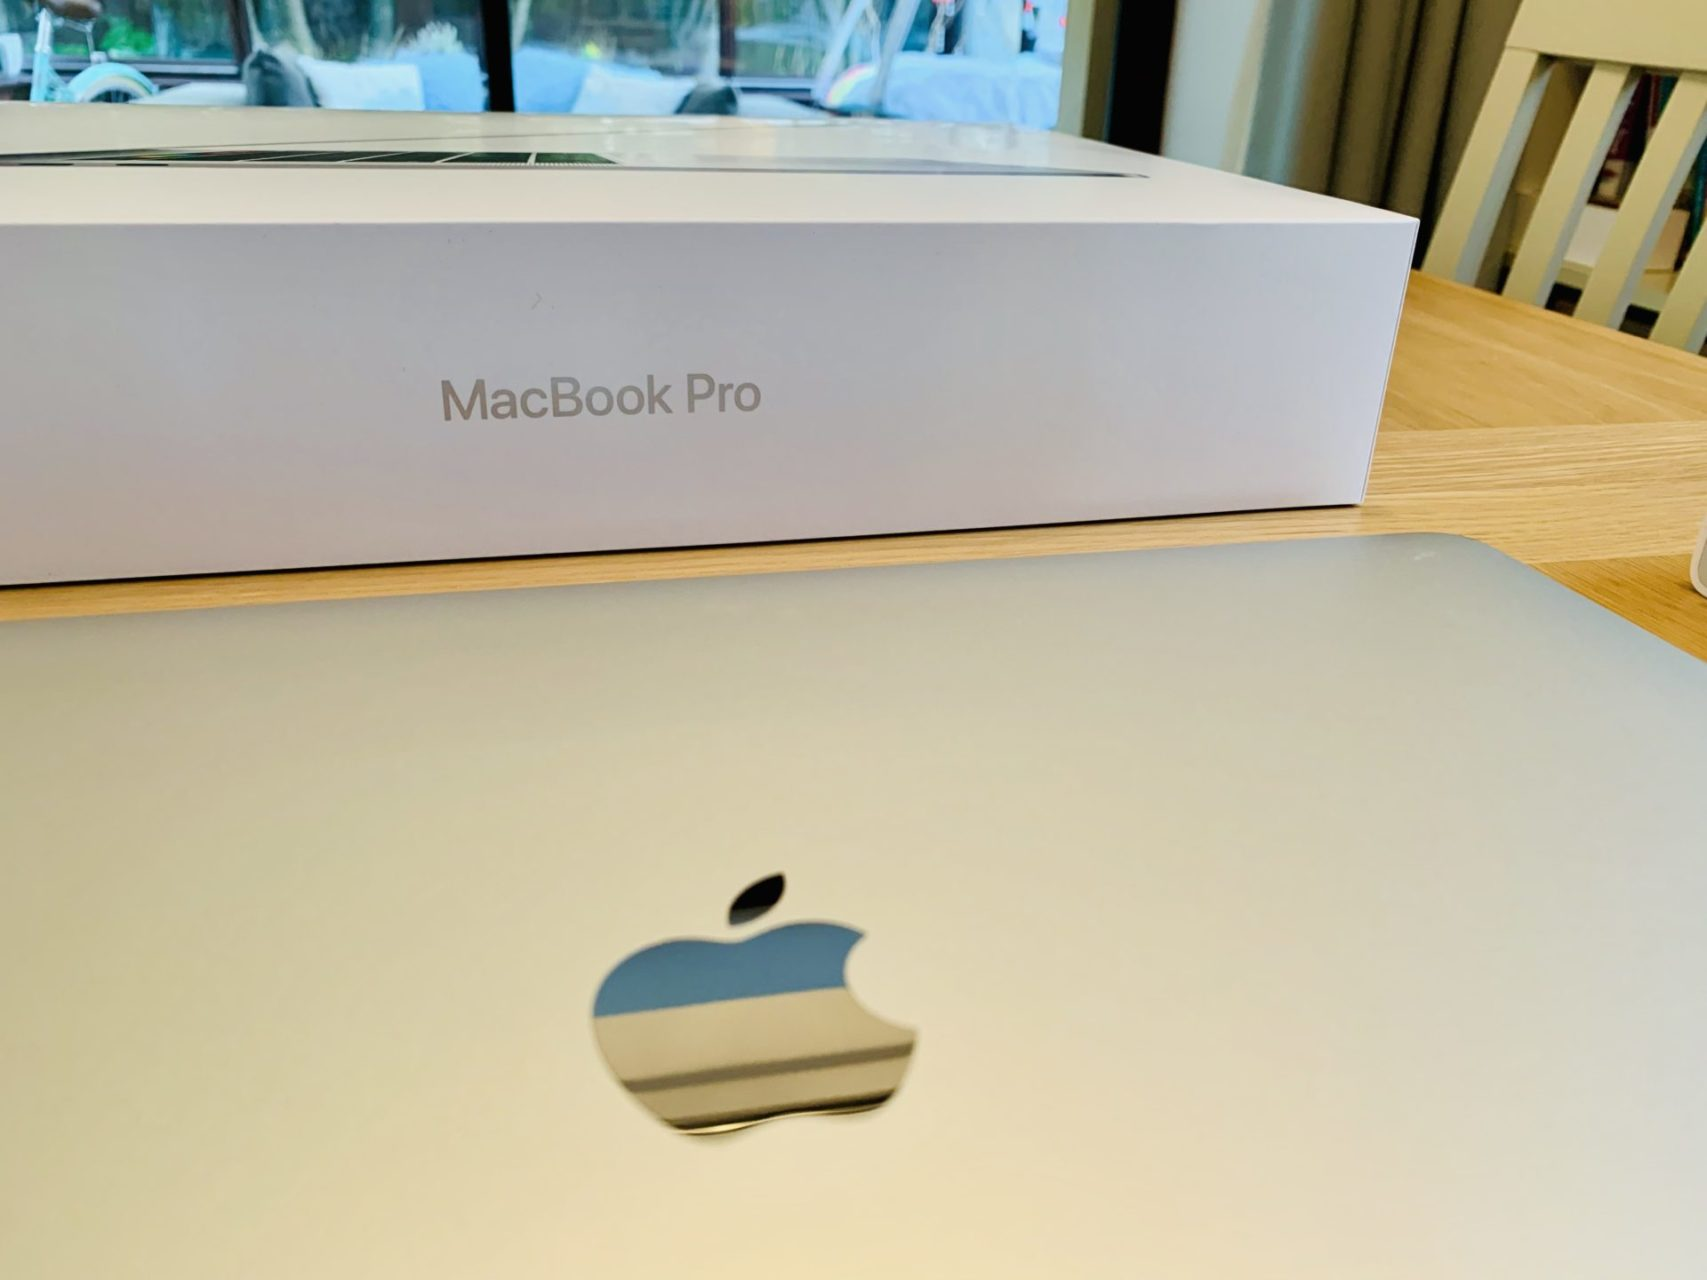 Apple MacBook Pro 15 inch unboxing